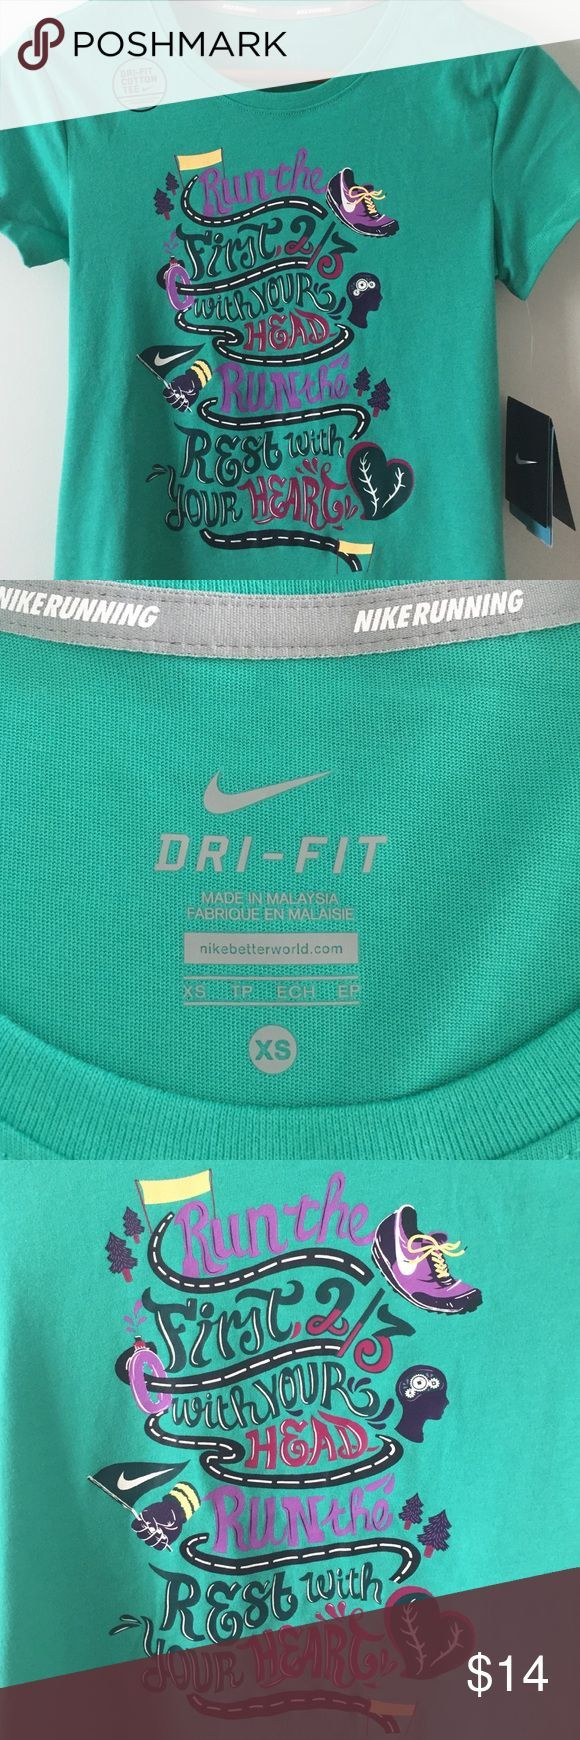 """NWT Nike running quote t-shirt """"Run the first 2/3 w/your head, run the rest w/your heart"""" quote on front. NWT. Size XS. Nike Tops"""